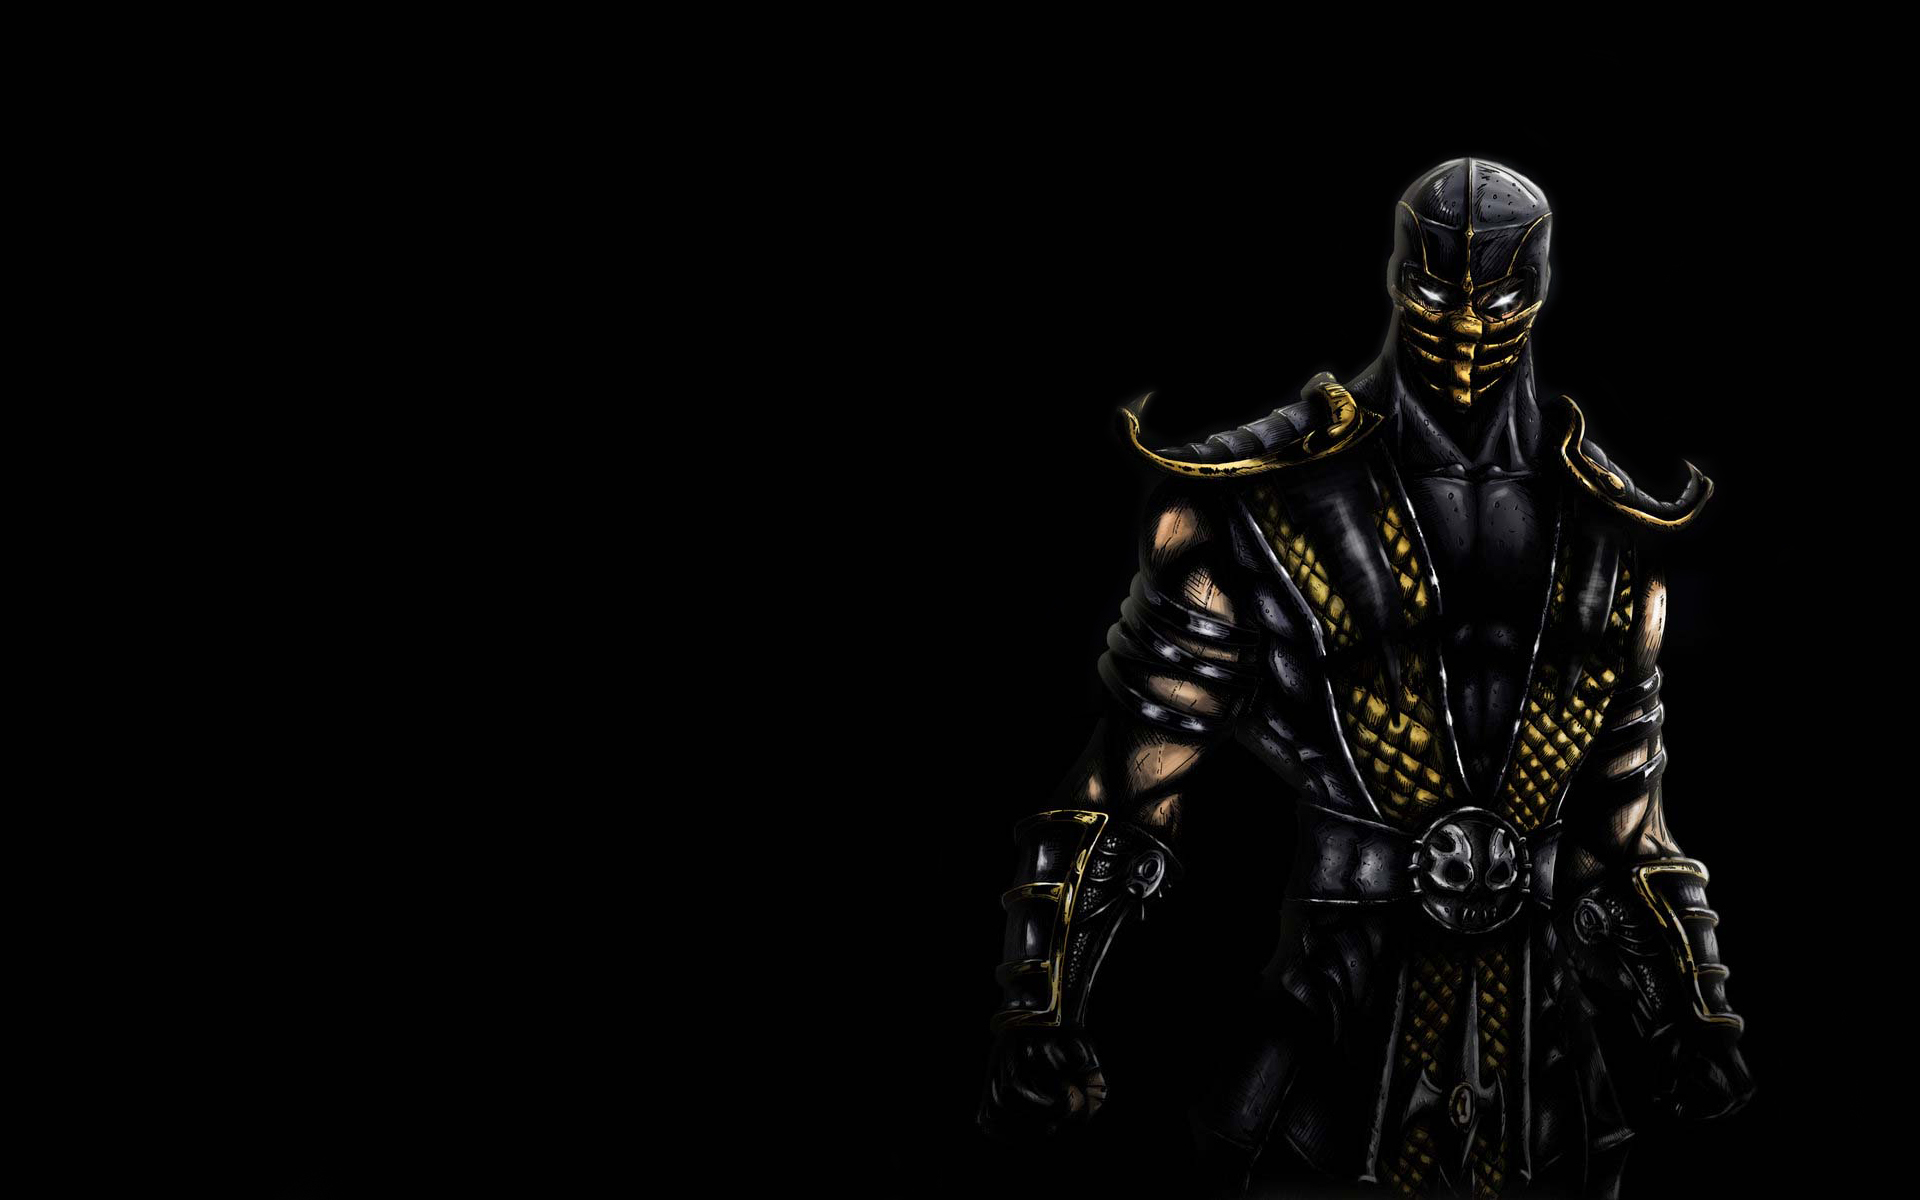 mortal kombat wallpaper scorpion 3 » mortal kombat games, fan site!